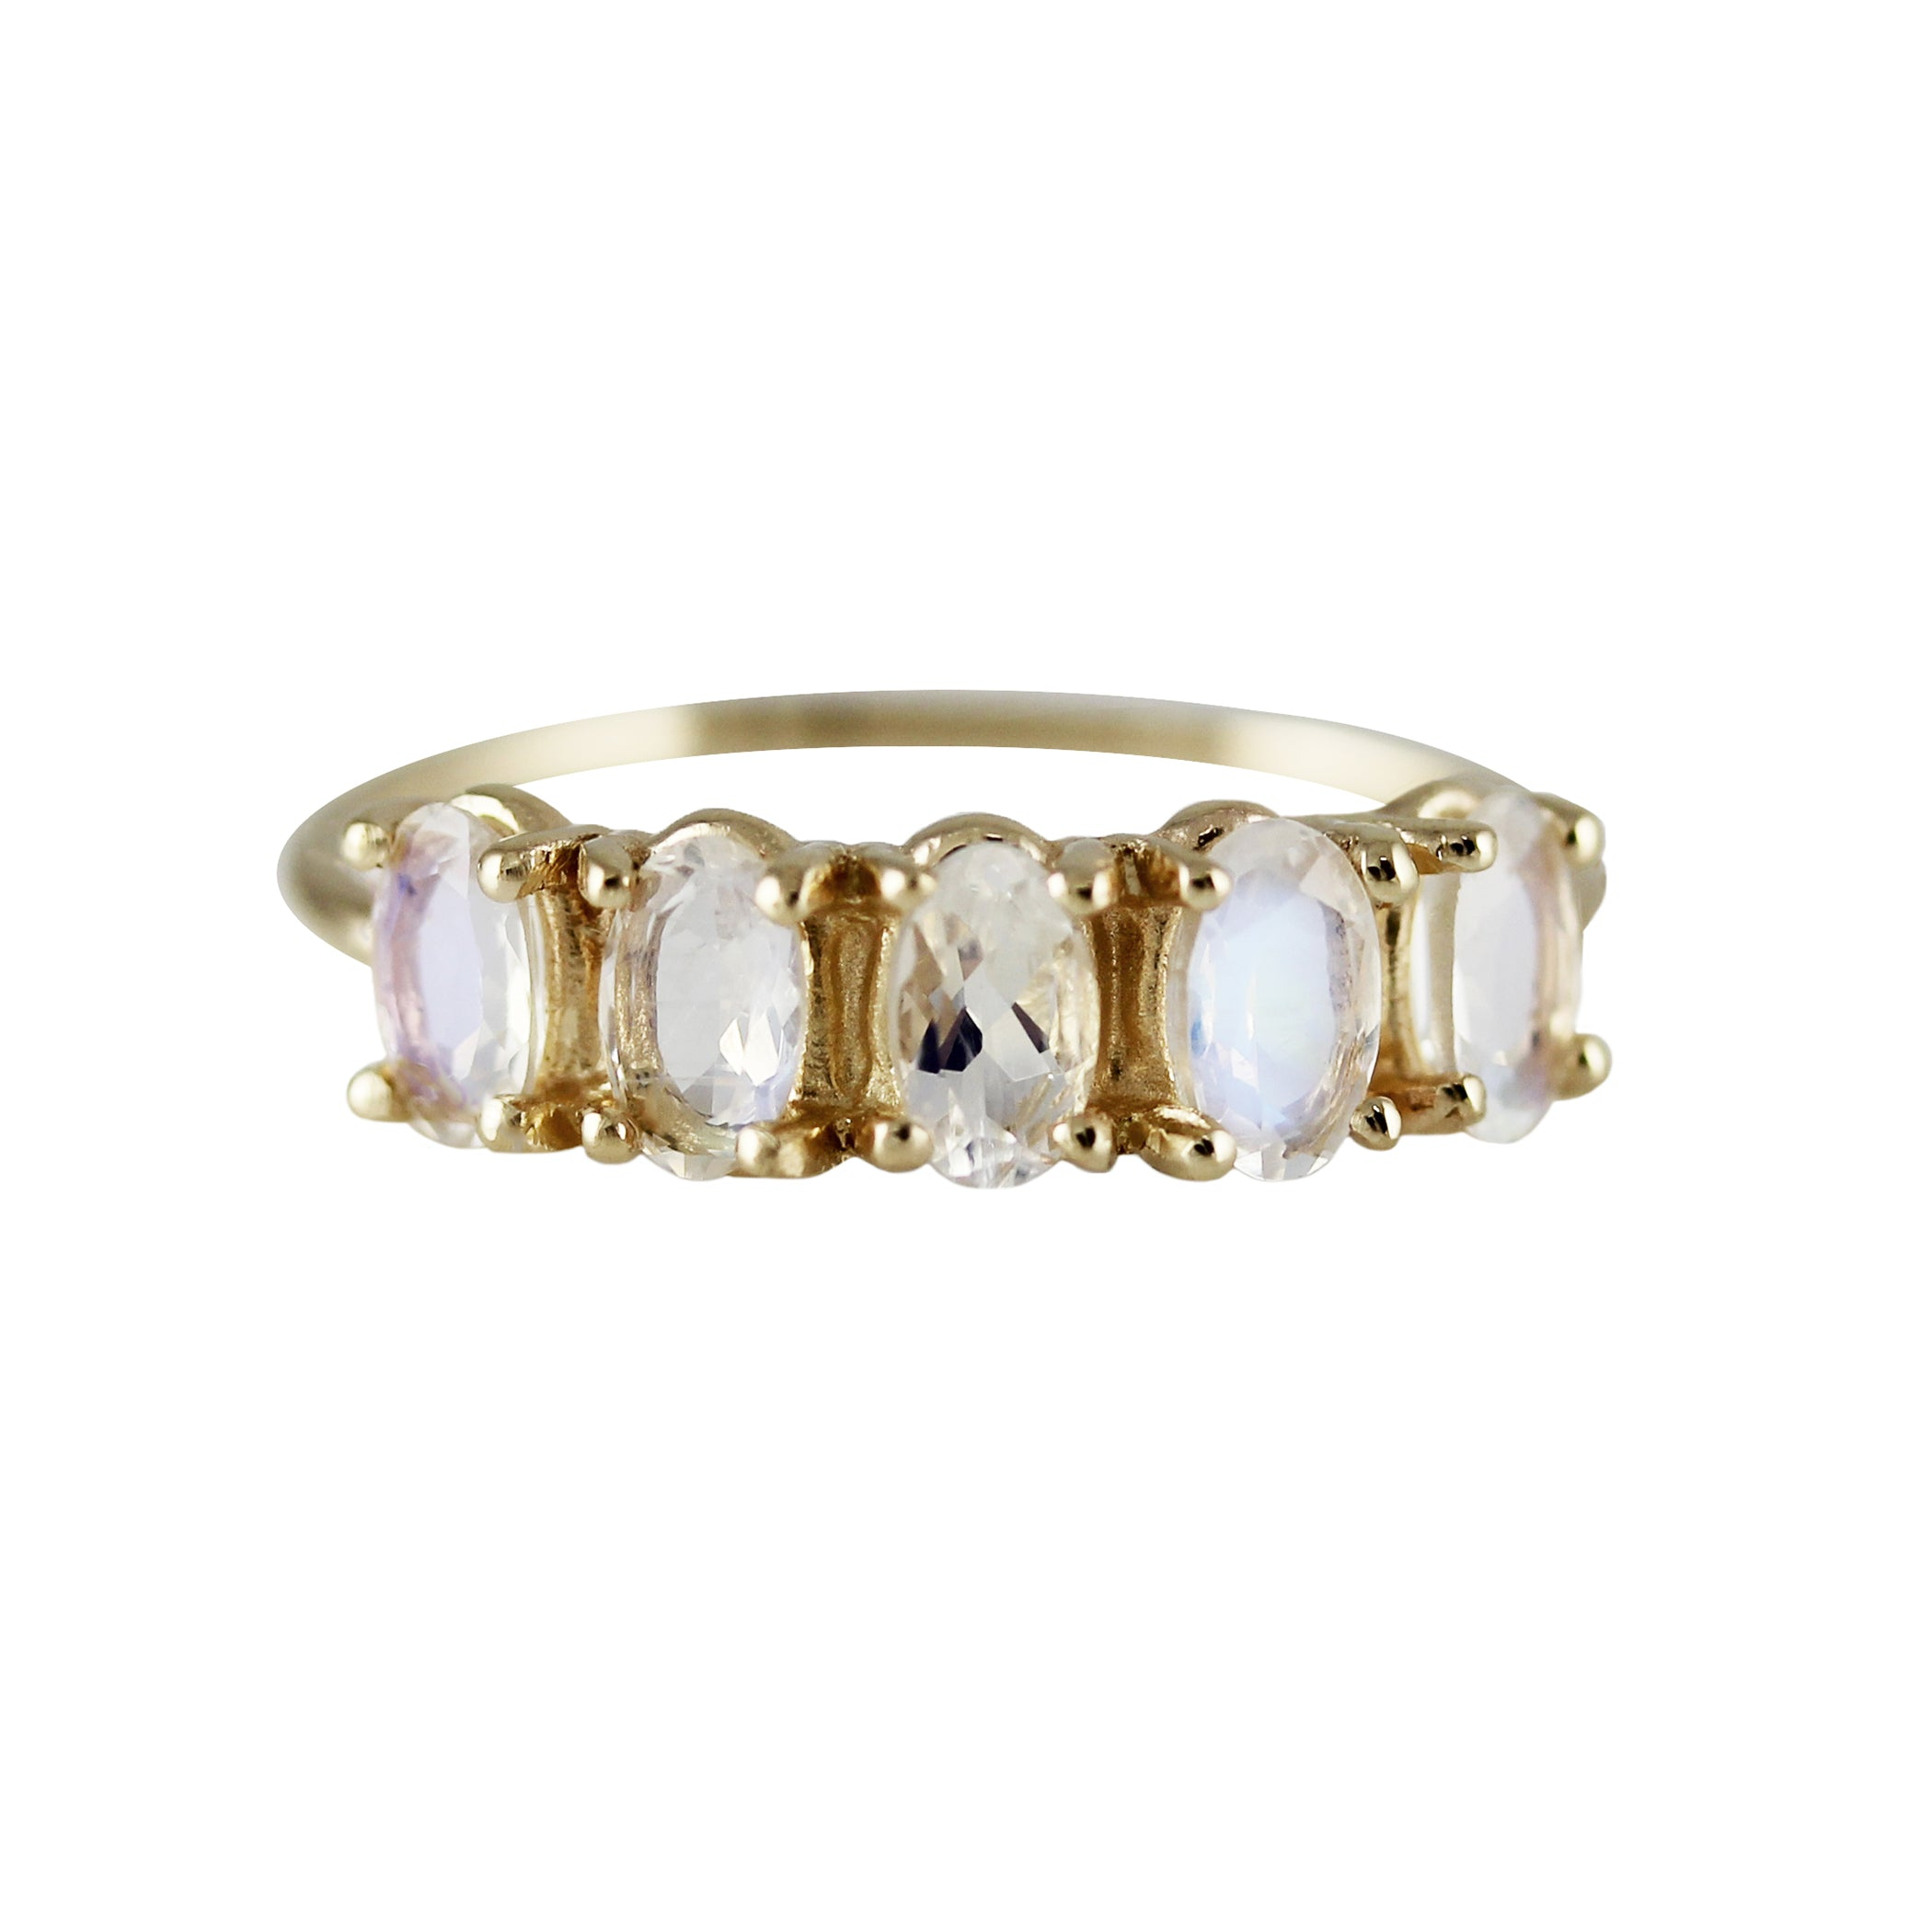 90a5f3ddb92c1 5 OVAL MOONSTONE RING